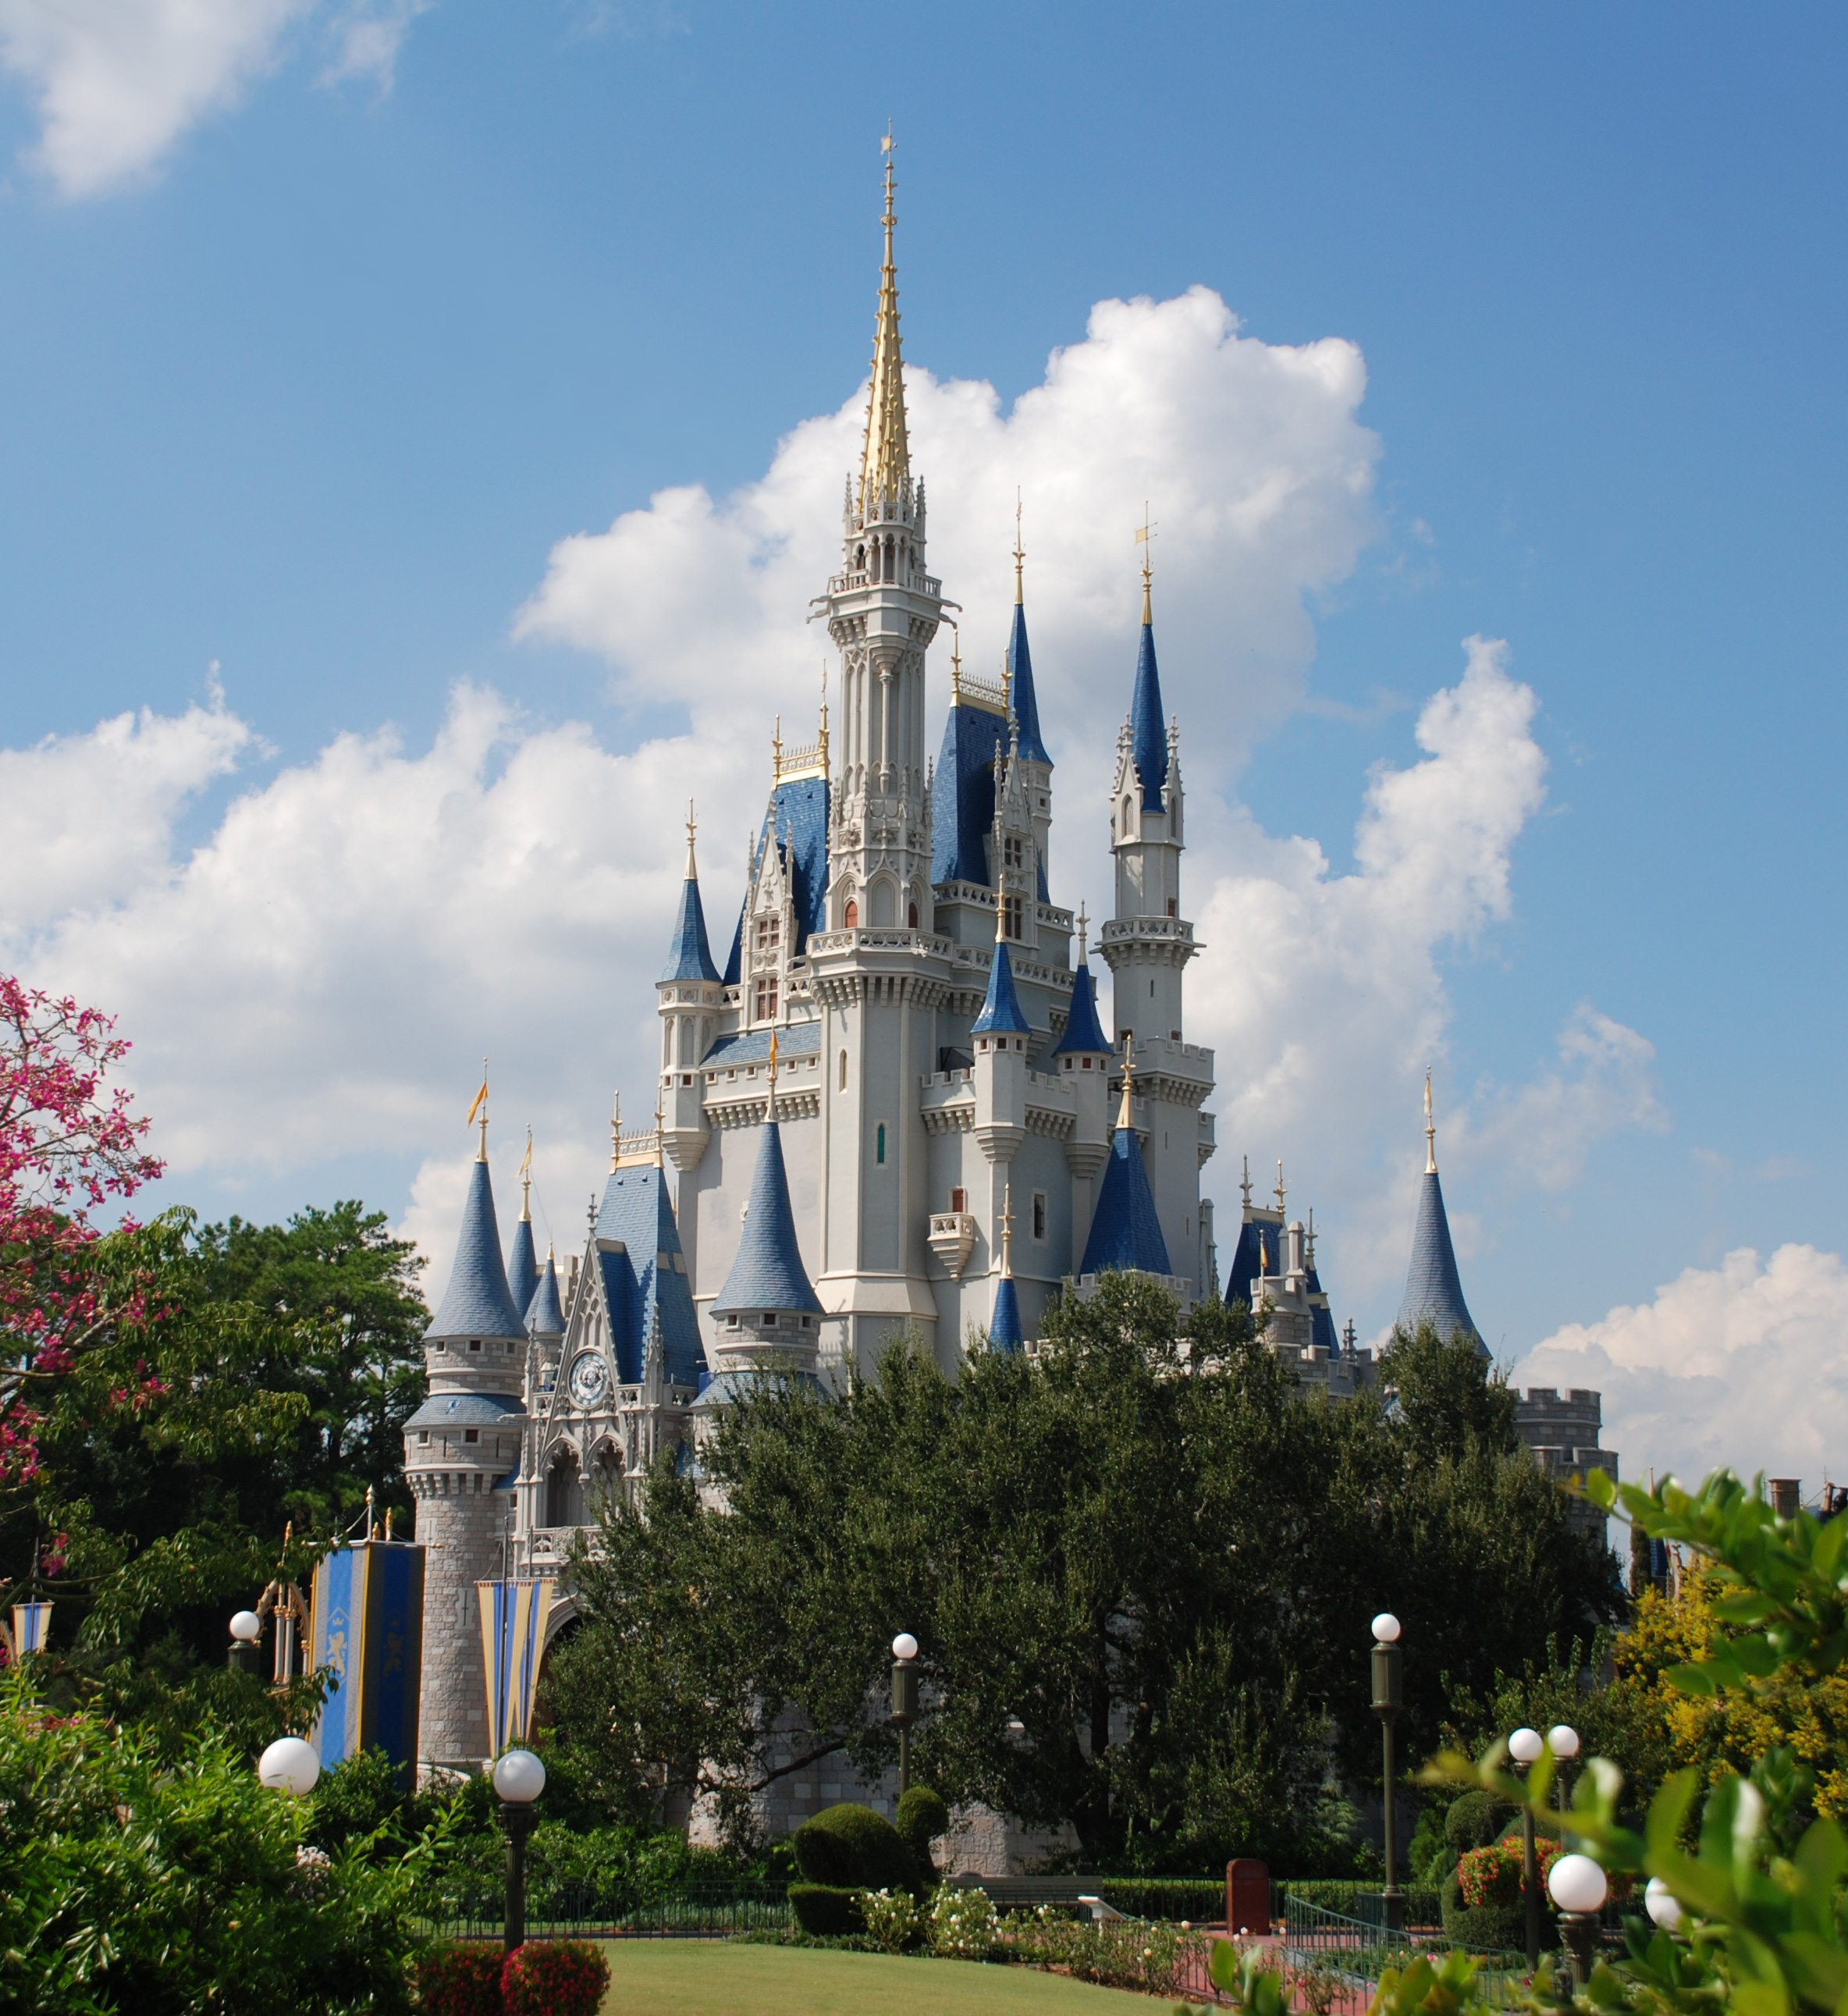 Cinderella's Castle at Walt Disney World Resort